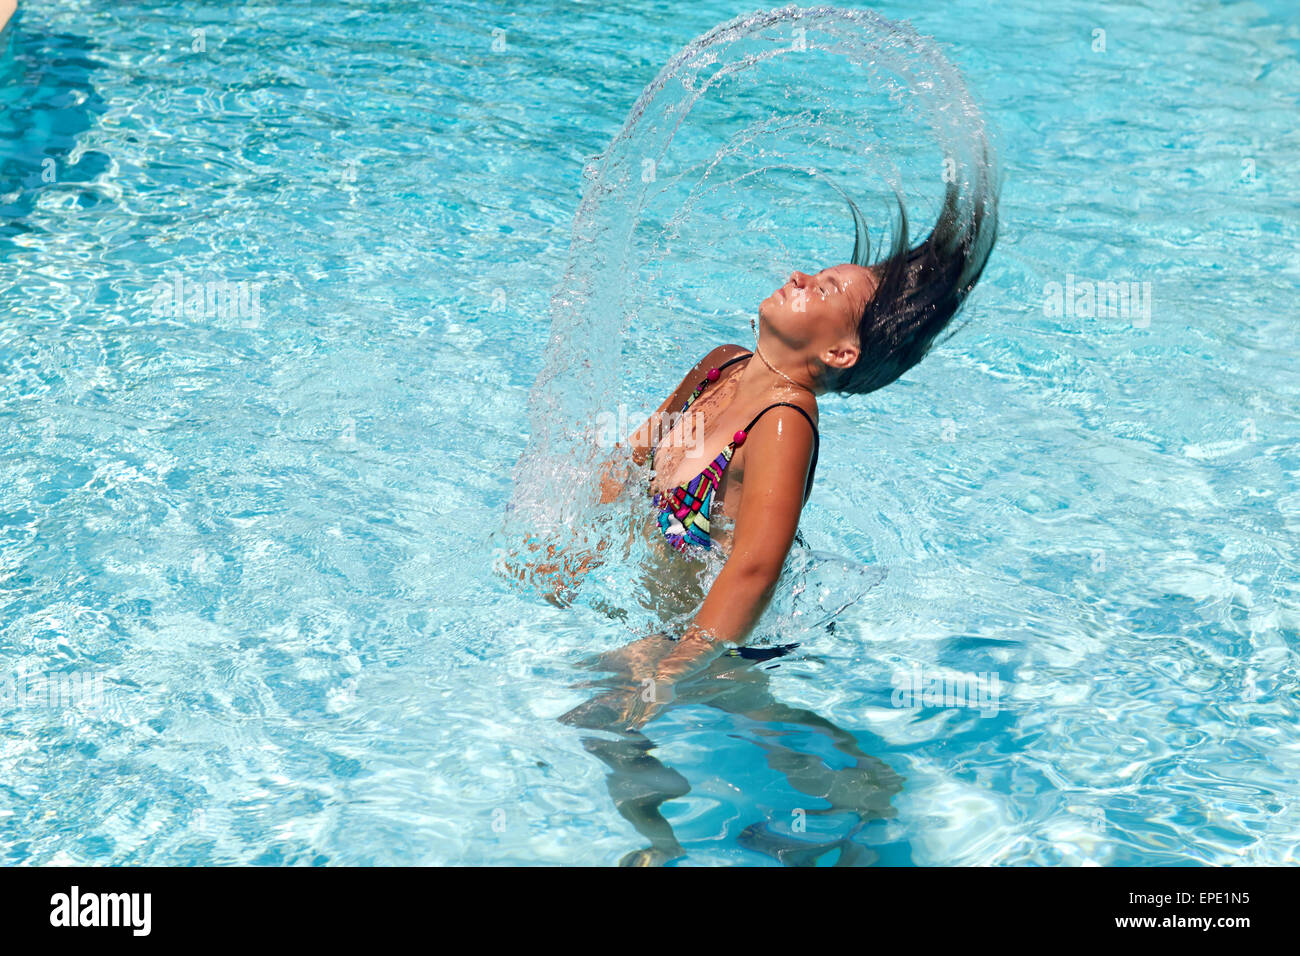 Pretty teen girl whipping her hair back in the pool and